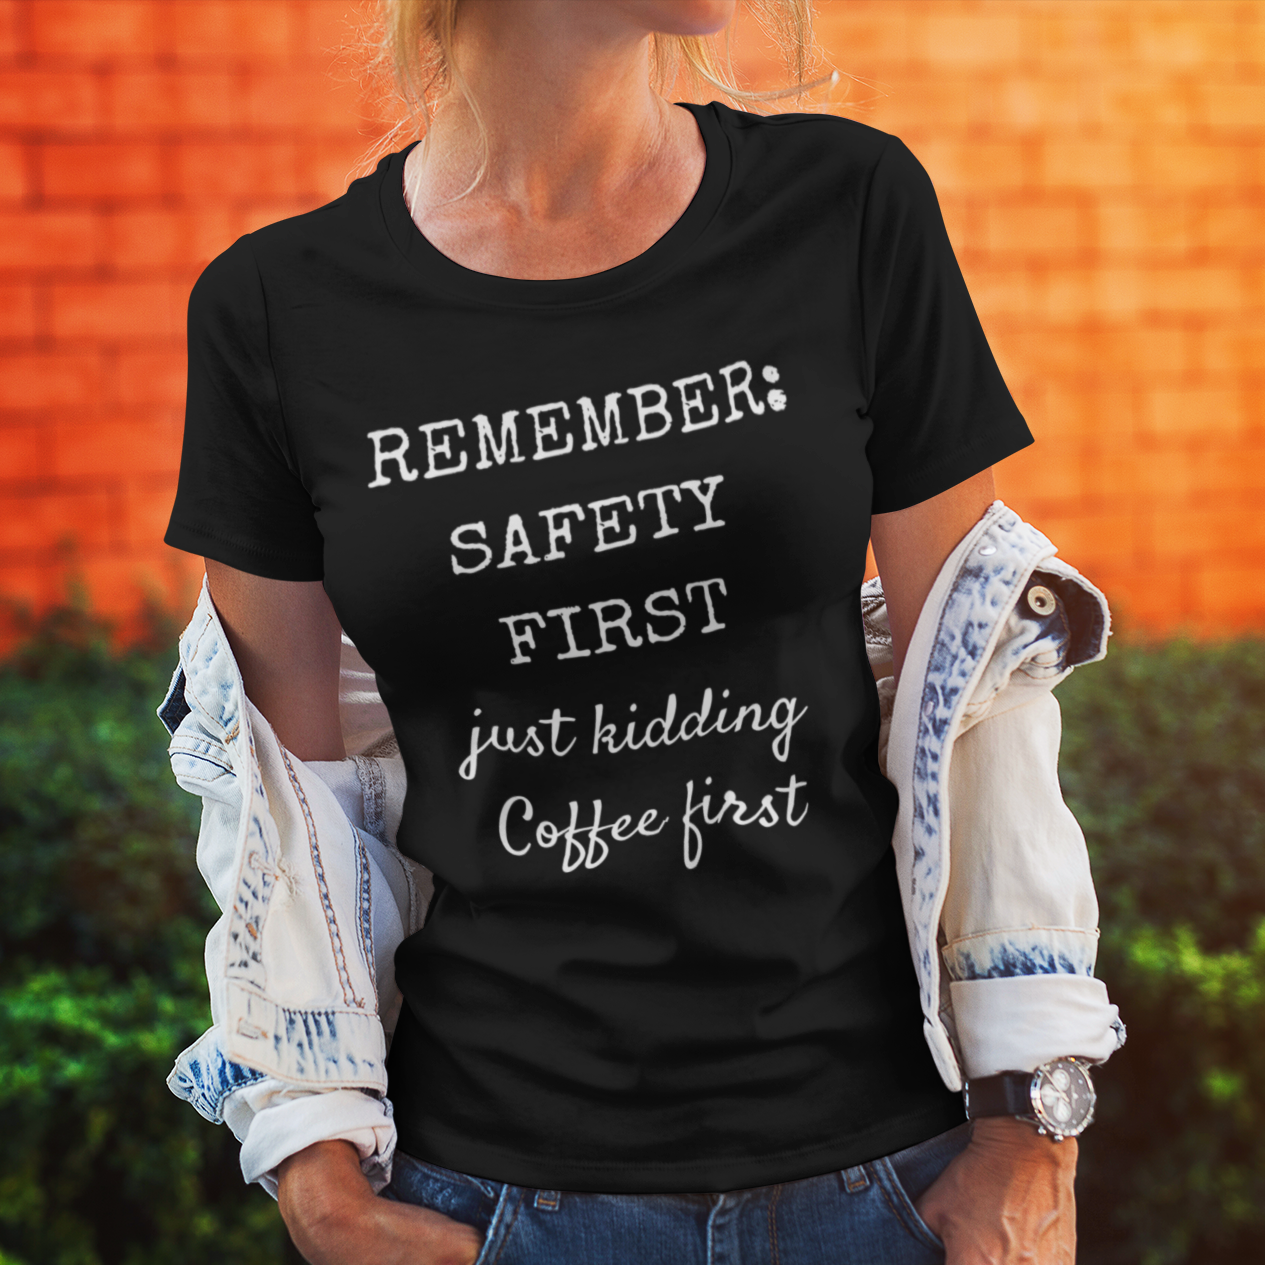 Model wearing Safety First- Just Kidding t-shirt